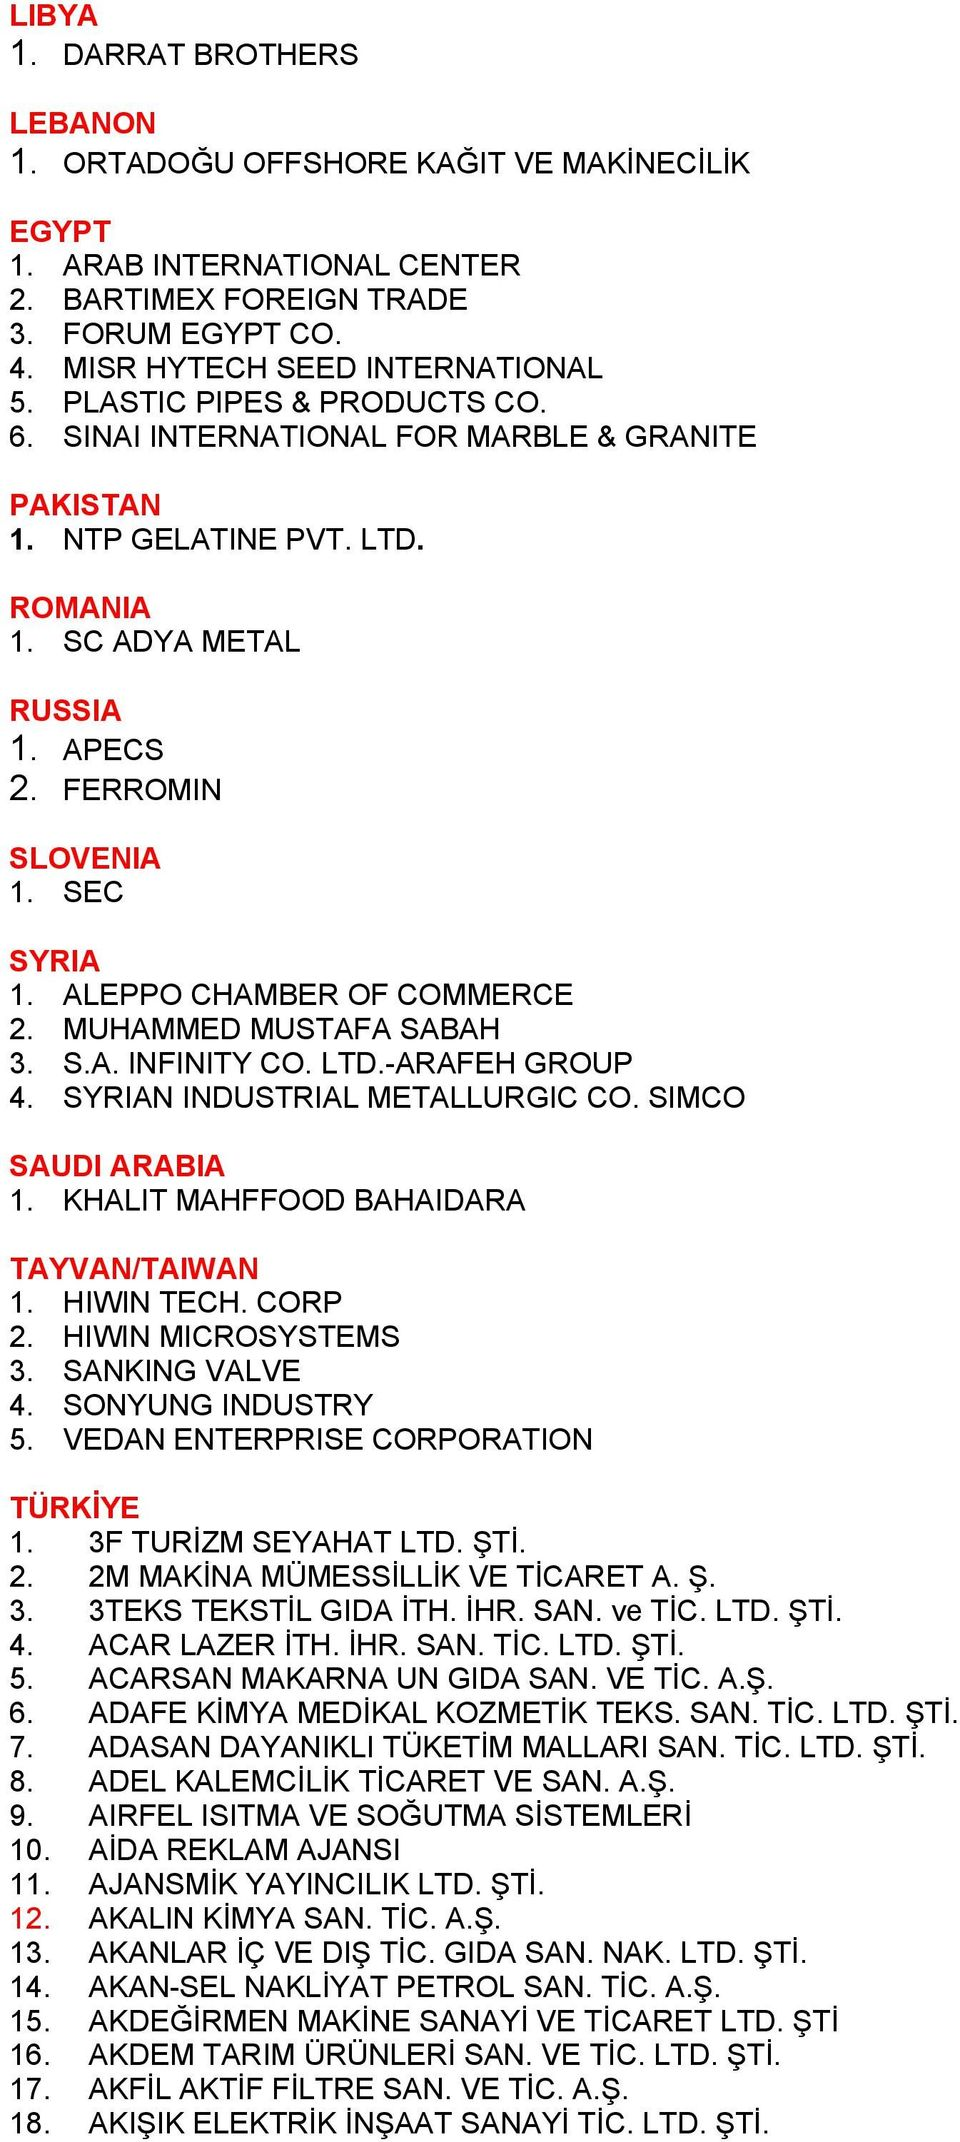 ALEPPO CHAMBER OF COMMERCE 2. MUHAMMED MUSTAFA SABAH 3. S.A. INFINITY CO. LTD.-ARAFEH GROUP 4. SYRIAN INDUSTRIAL METALLURGIC CO. SIMCO SAUDI ARABIA 1. KHALIT MAHFFOOD BAHAIDARA TAYVAN/TAIWAN 1.